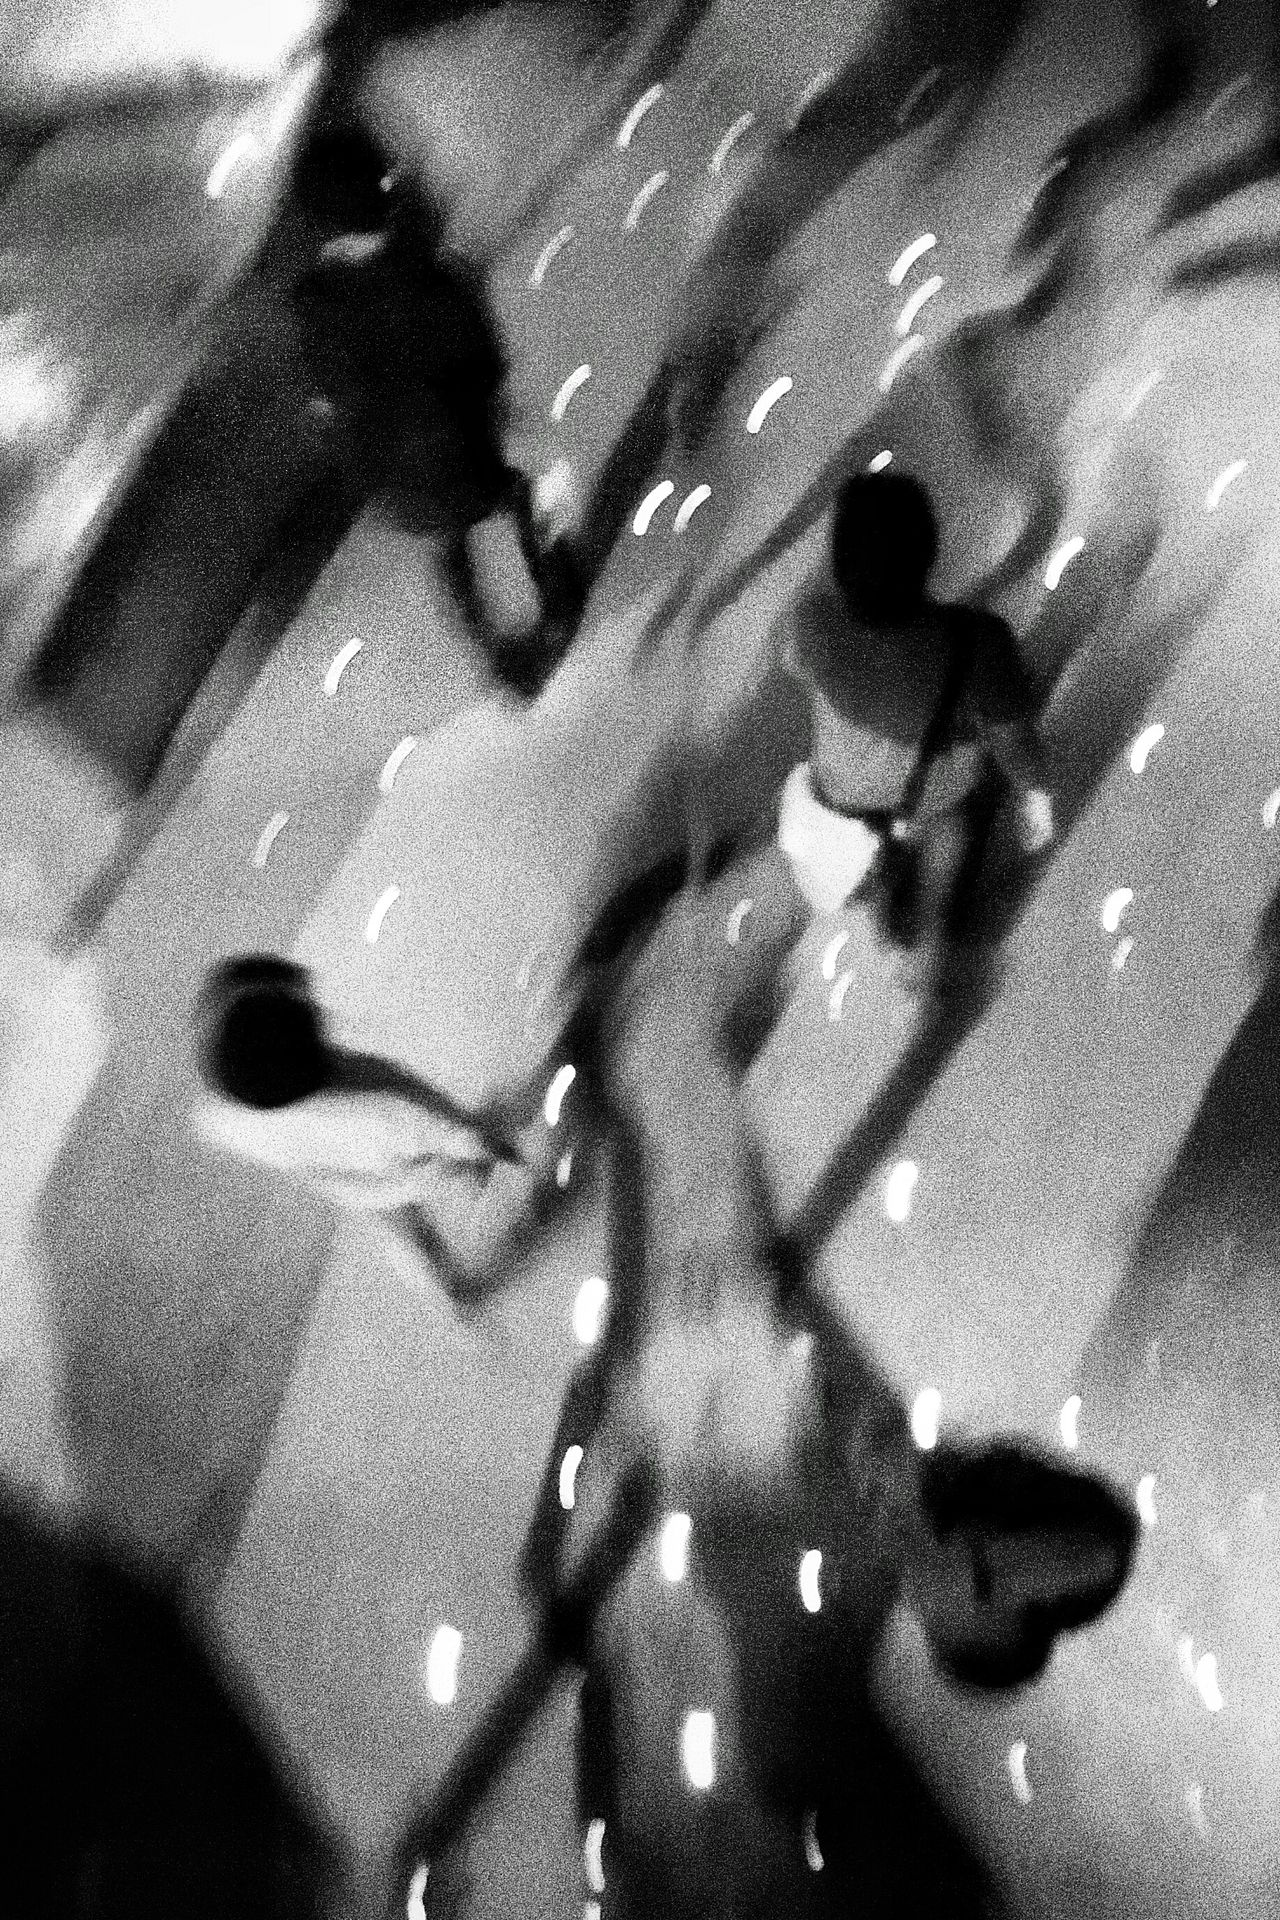 Streetphotography Street Photography Streetphoto_bw Mobilephotography Singapore Sg Cmmaung Shadow Real People High Angle View Lifestyles Indoors  People